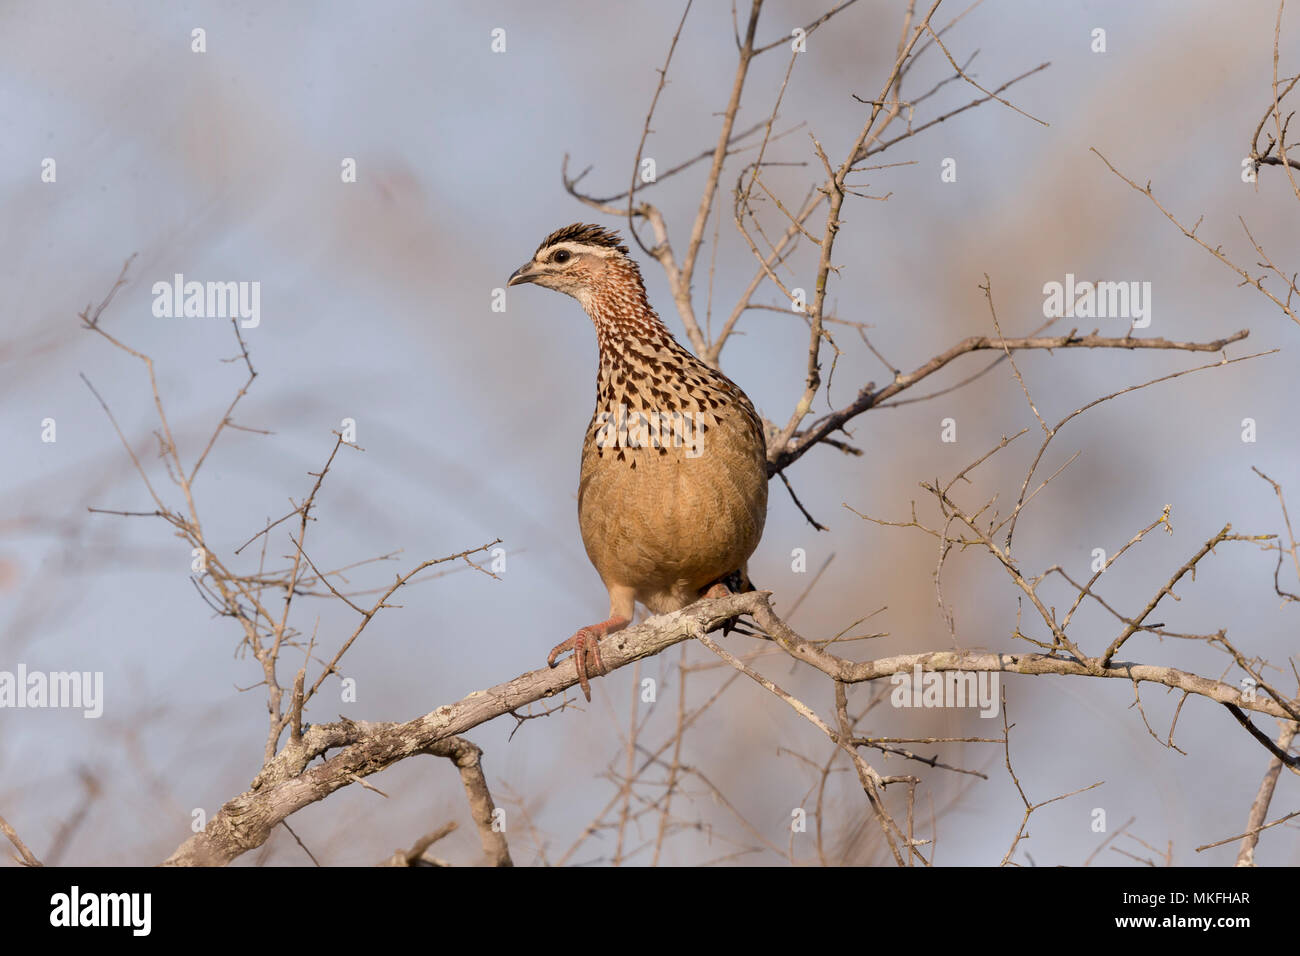 Crested francolin (Dendroperdix sephaena), perched in a tree, Mala Mala game reserve, South African Republic - Stock Image